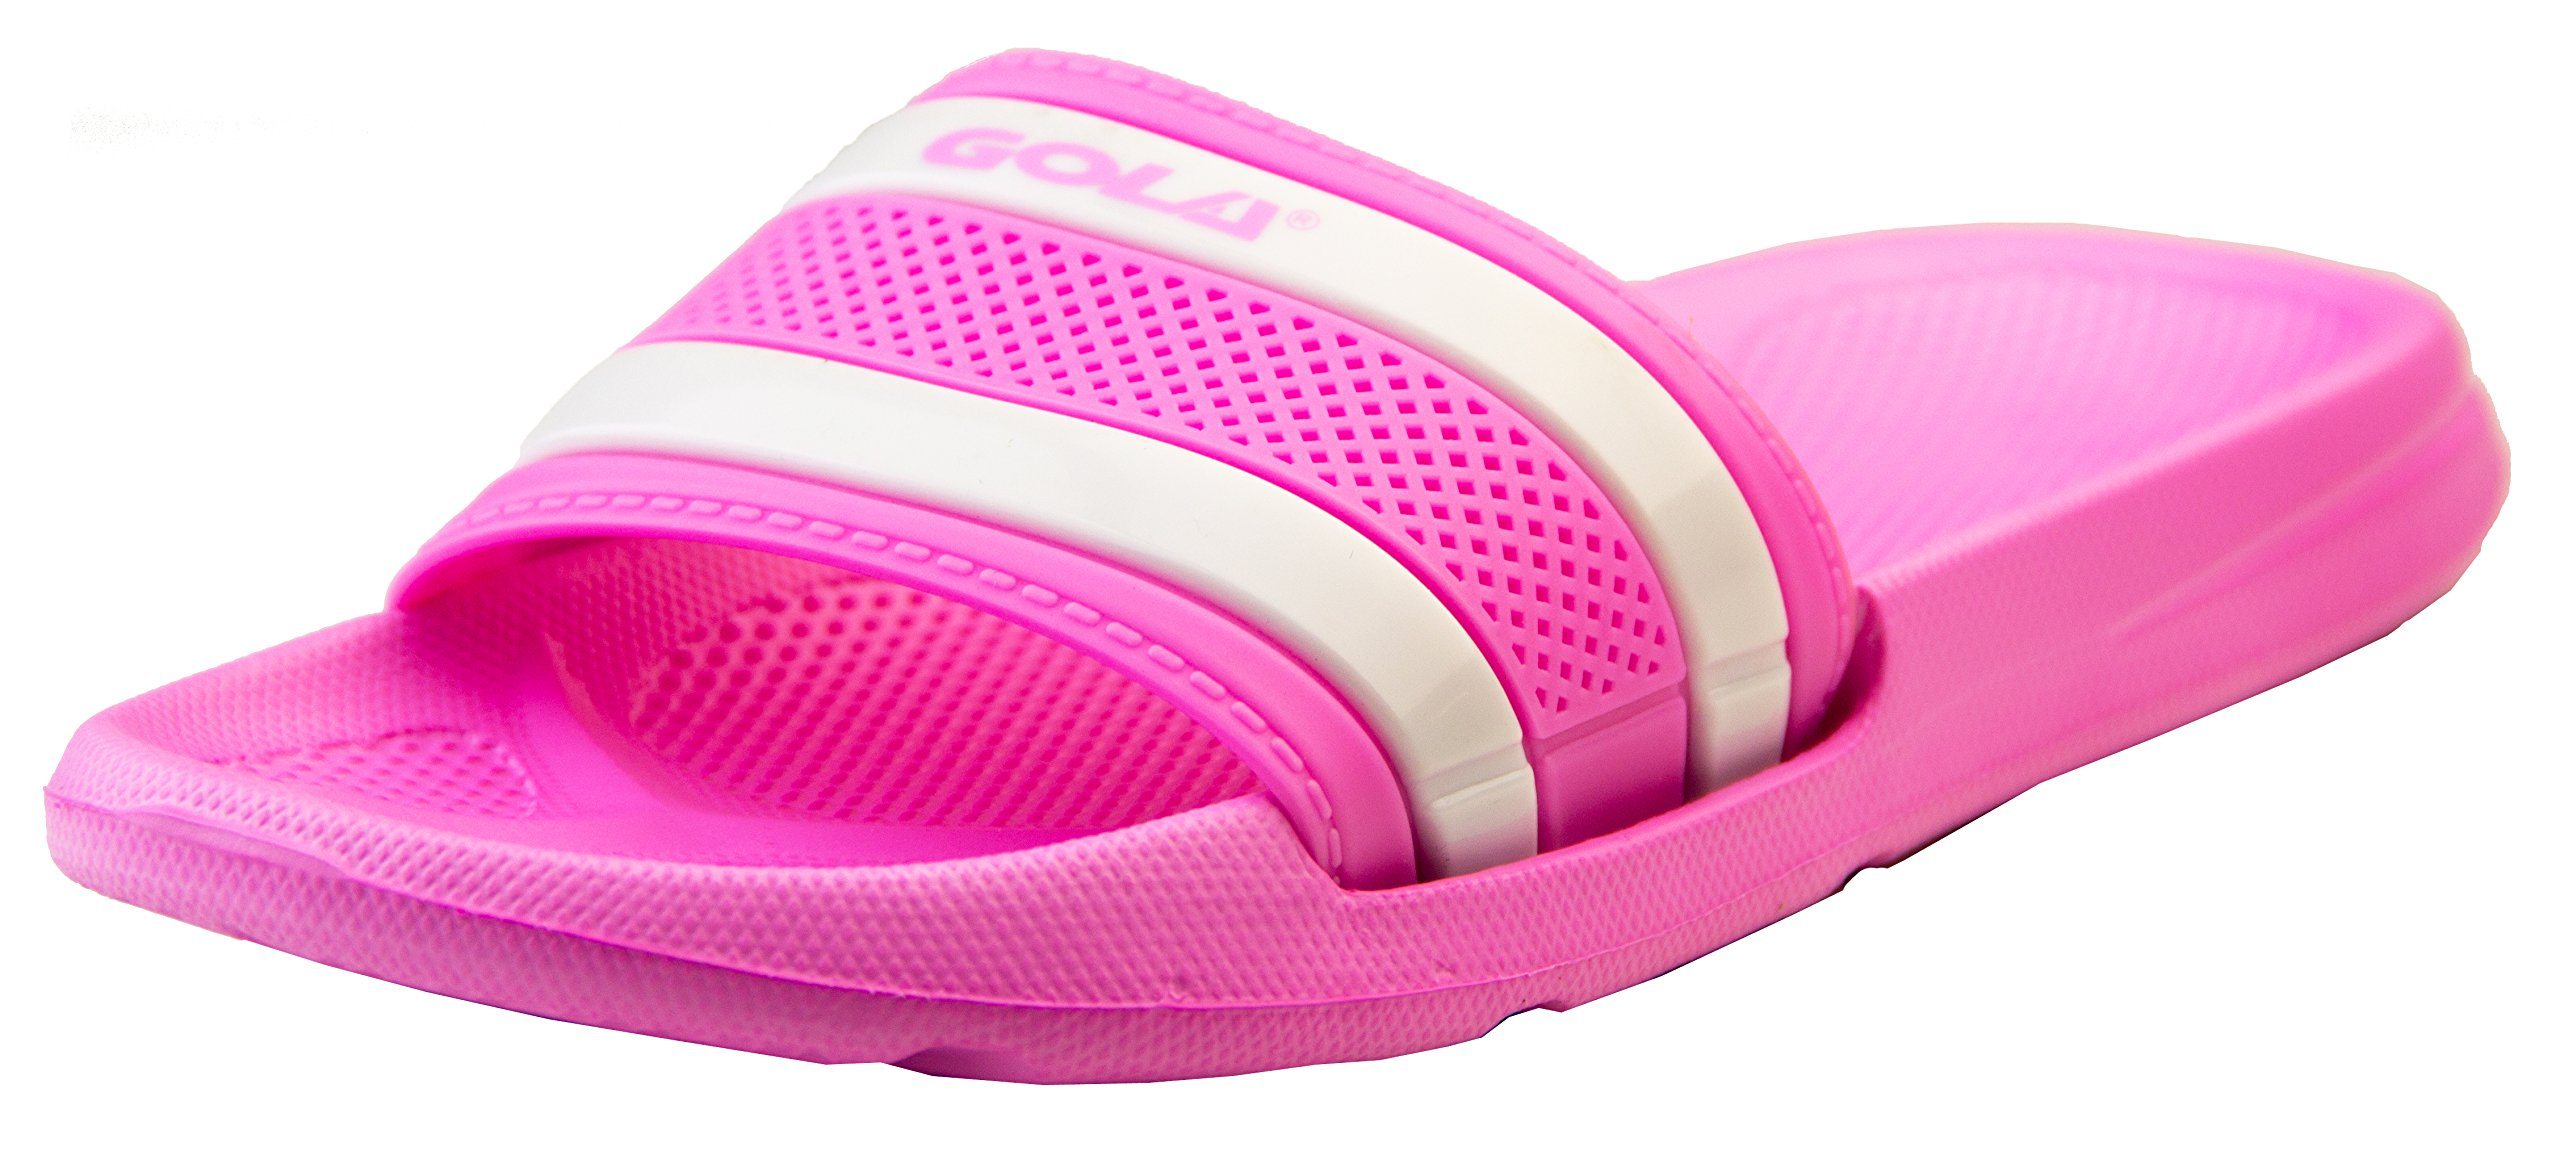 Gola Womens Pink and White Mule Sandals US 5